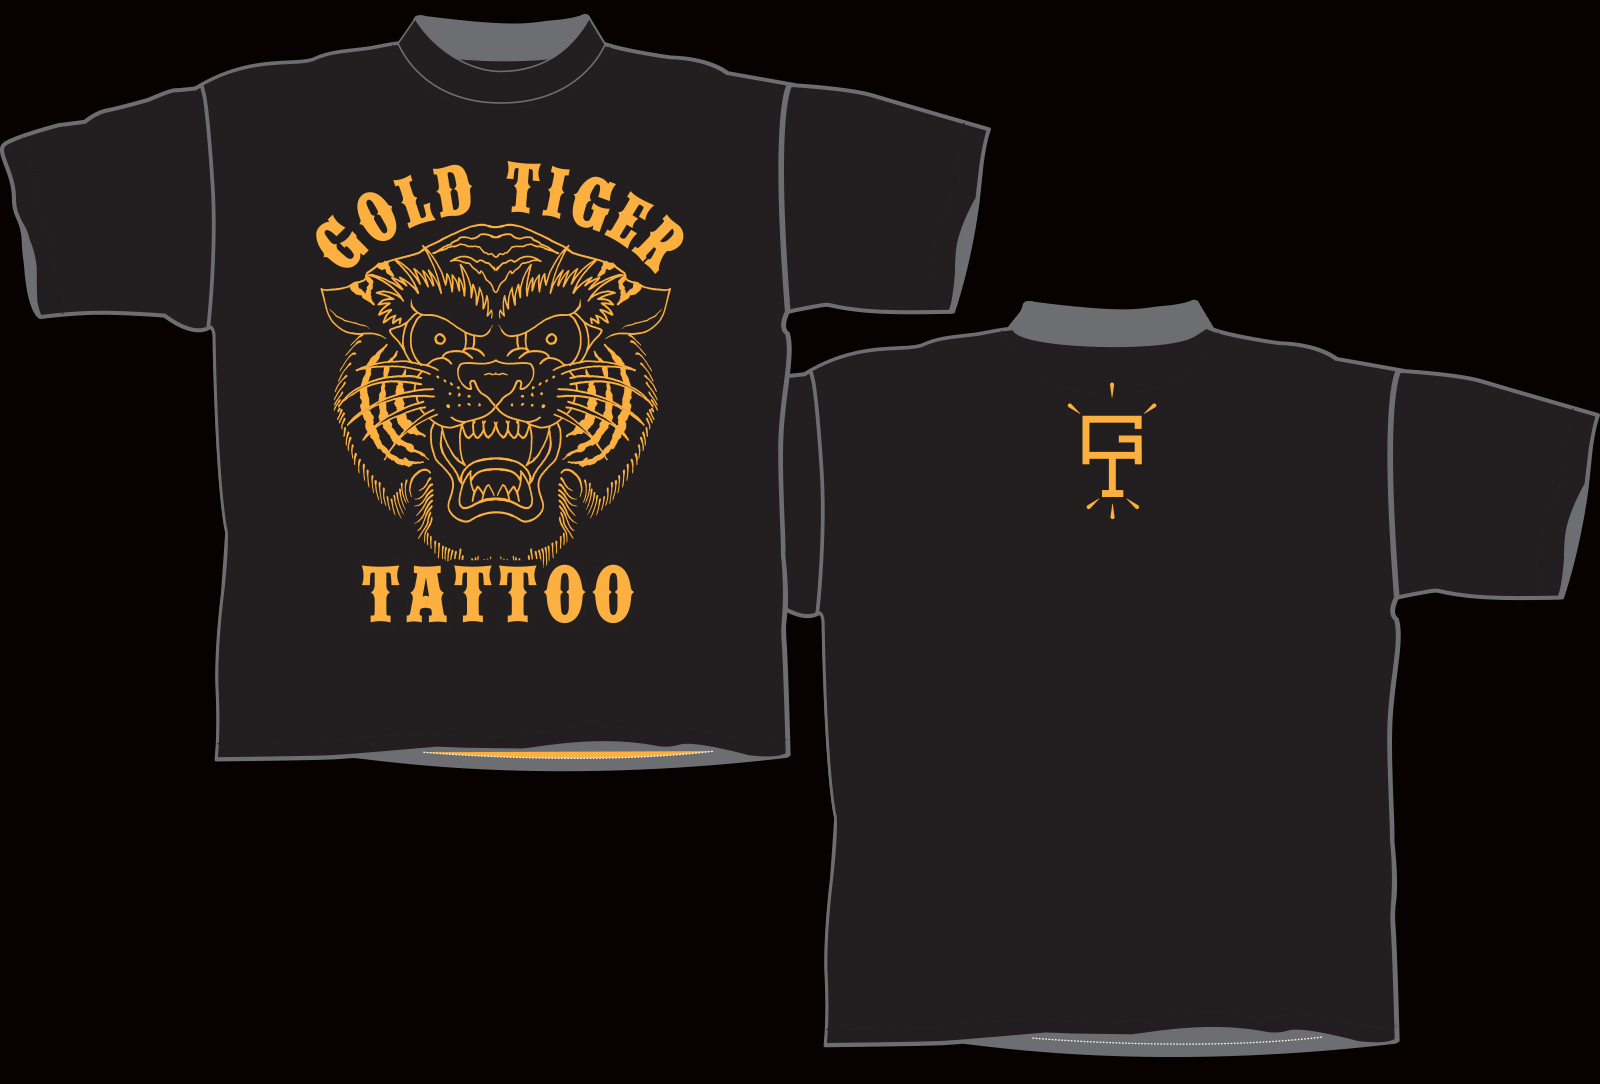 T-shirts are available in L, XL and XXL, black shirt with gold print. $25.00 shipped!